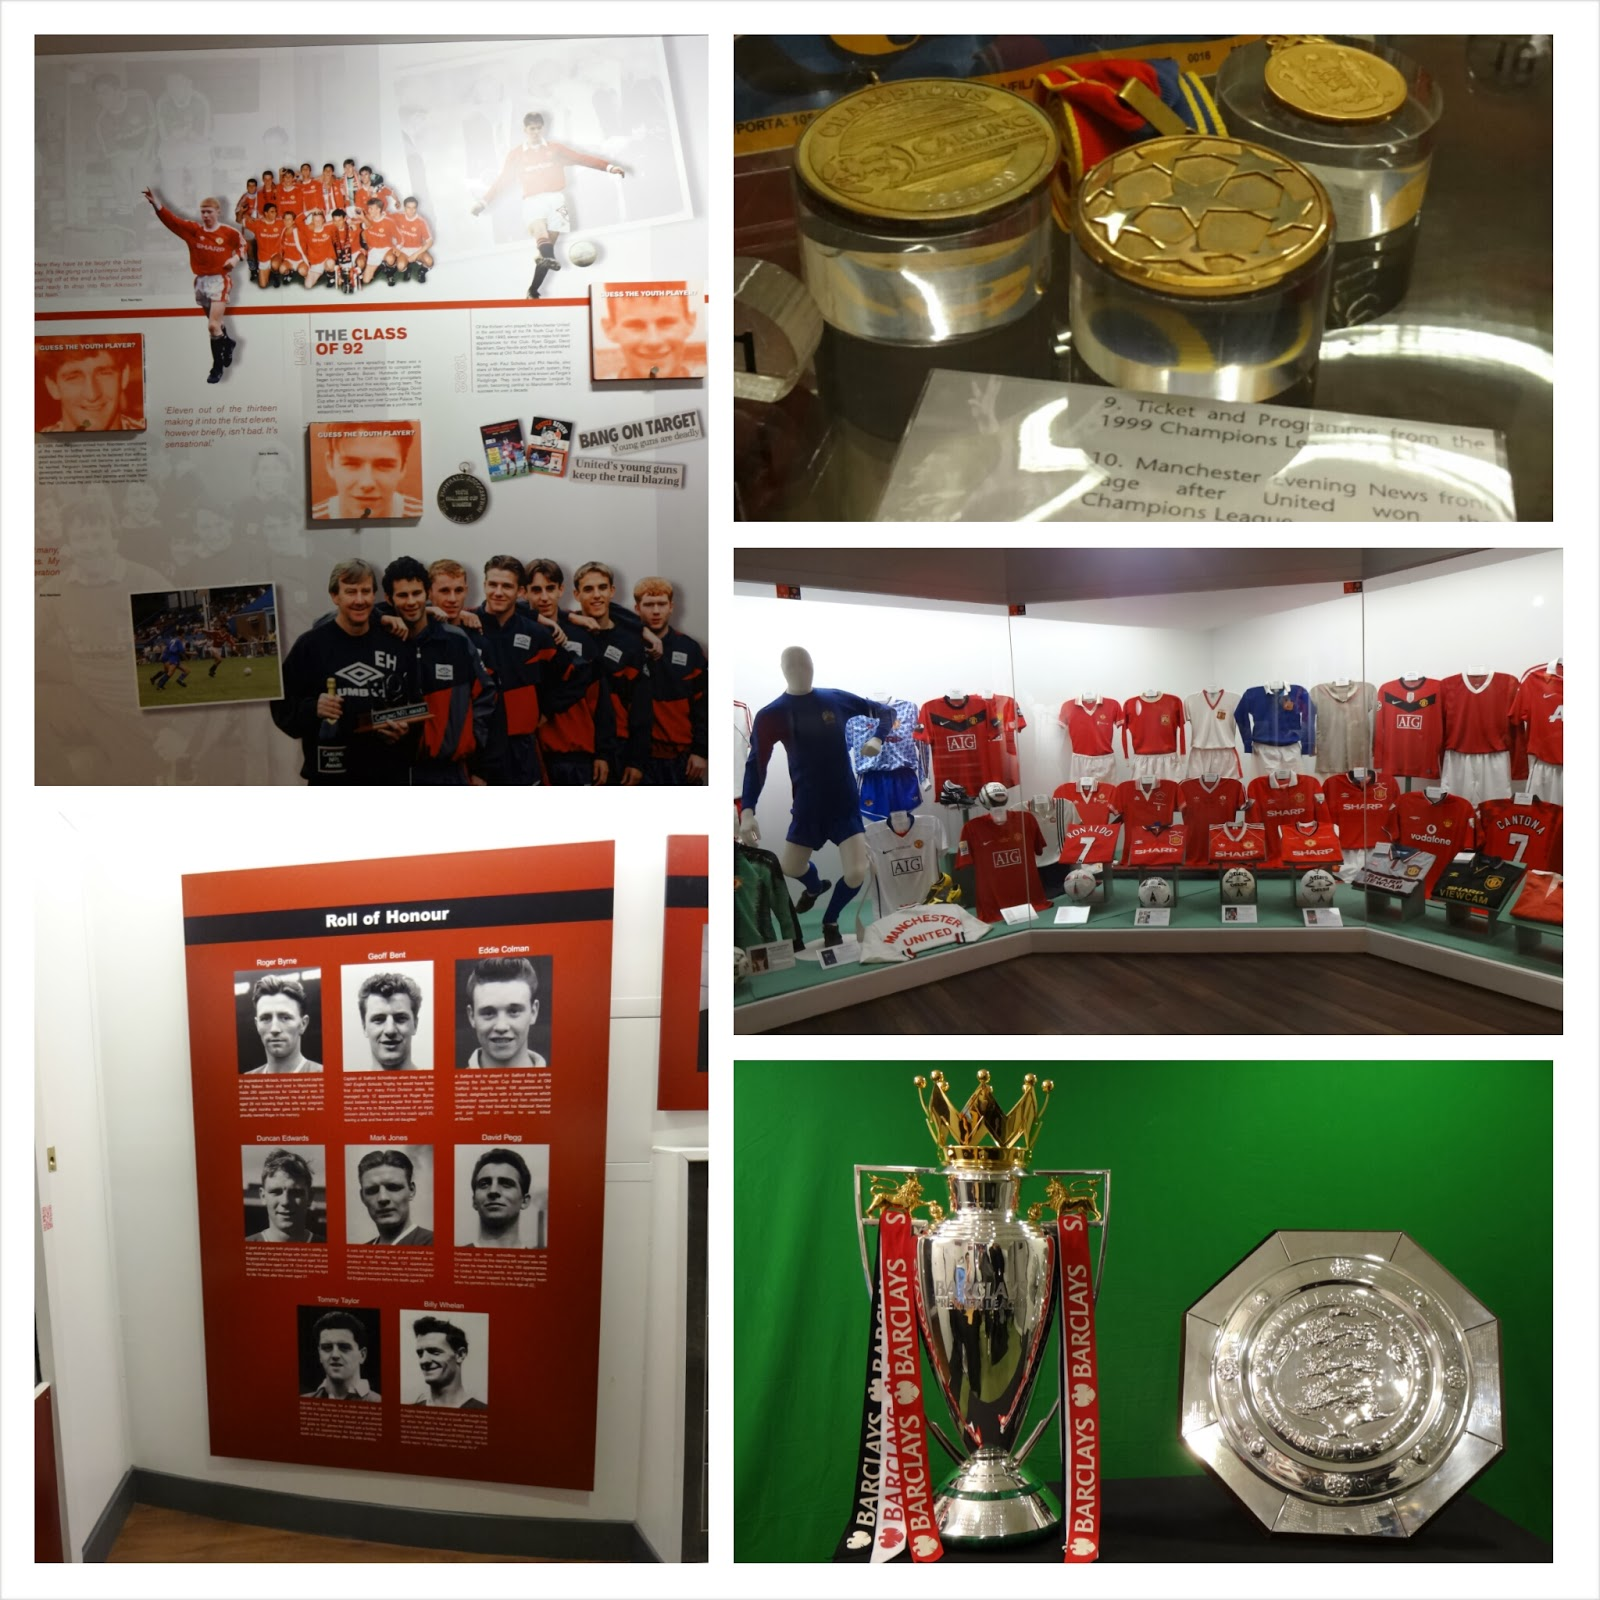 Manchester United Museum at Old Trafford, Class of 92, Busby Babes, Ryan Giggs Treble Medals, Premier League Trophy, Community Shield, Manchester United Shirts